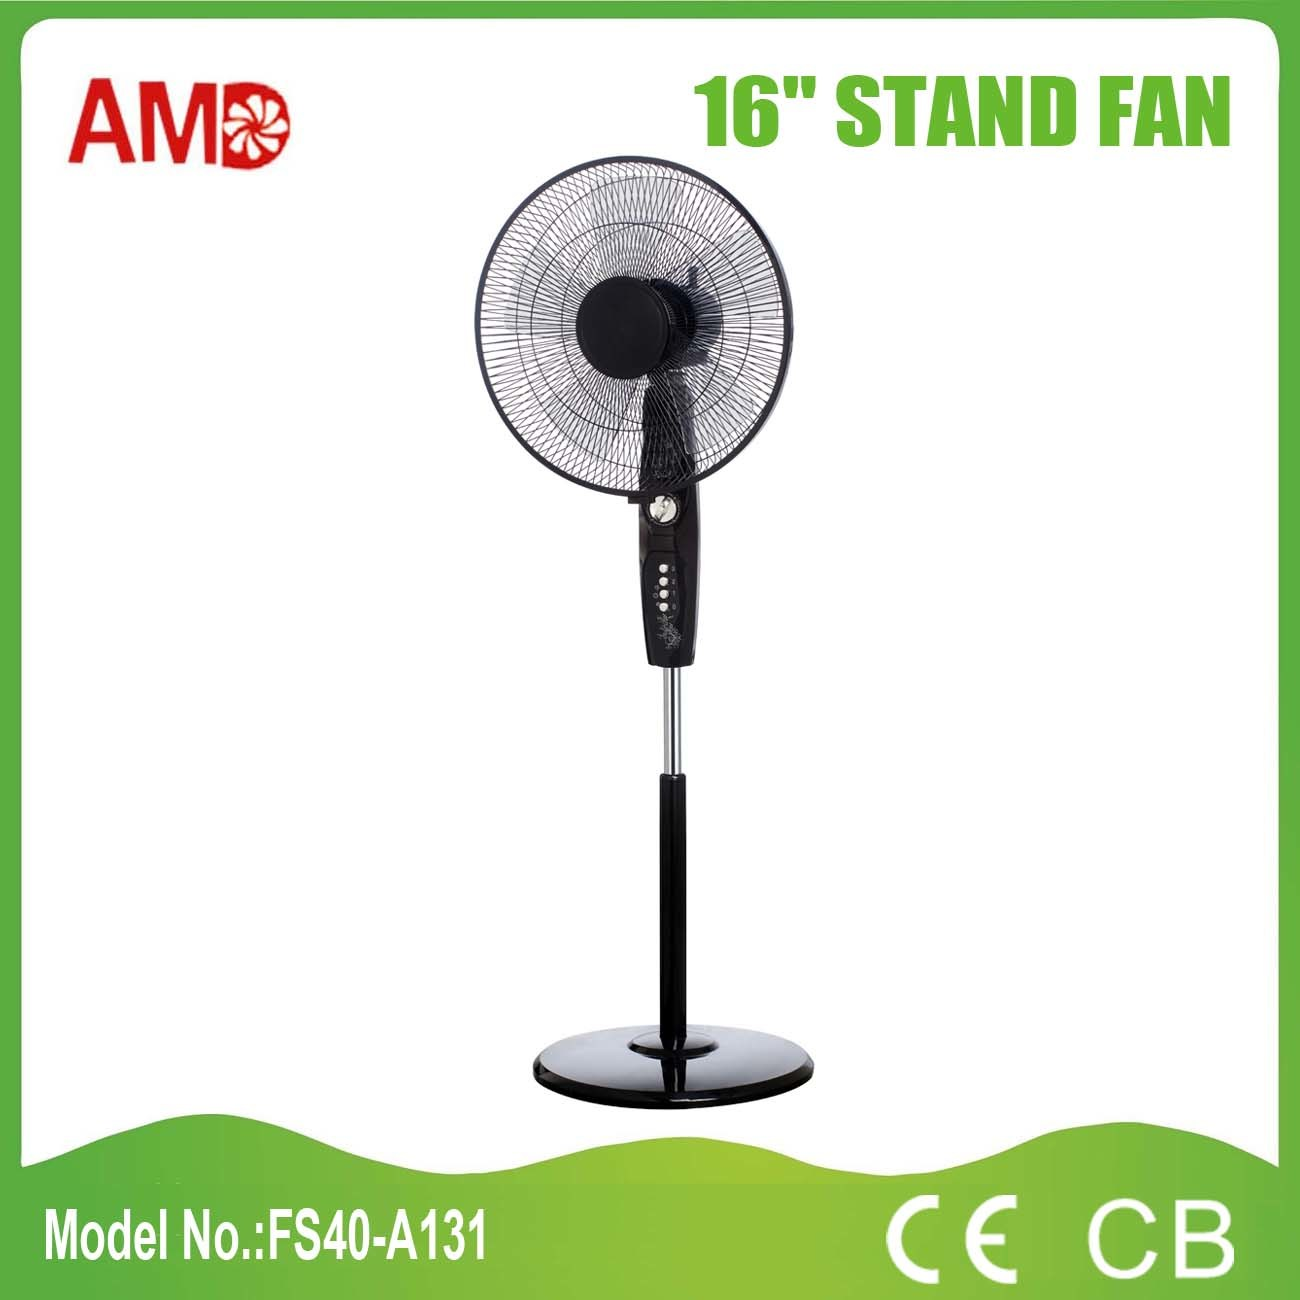 New Design Good Quality 16 Inch Stand Fan with Ce CB Certificate (FS40-A131)